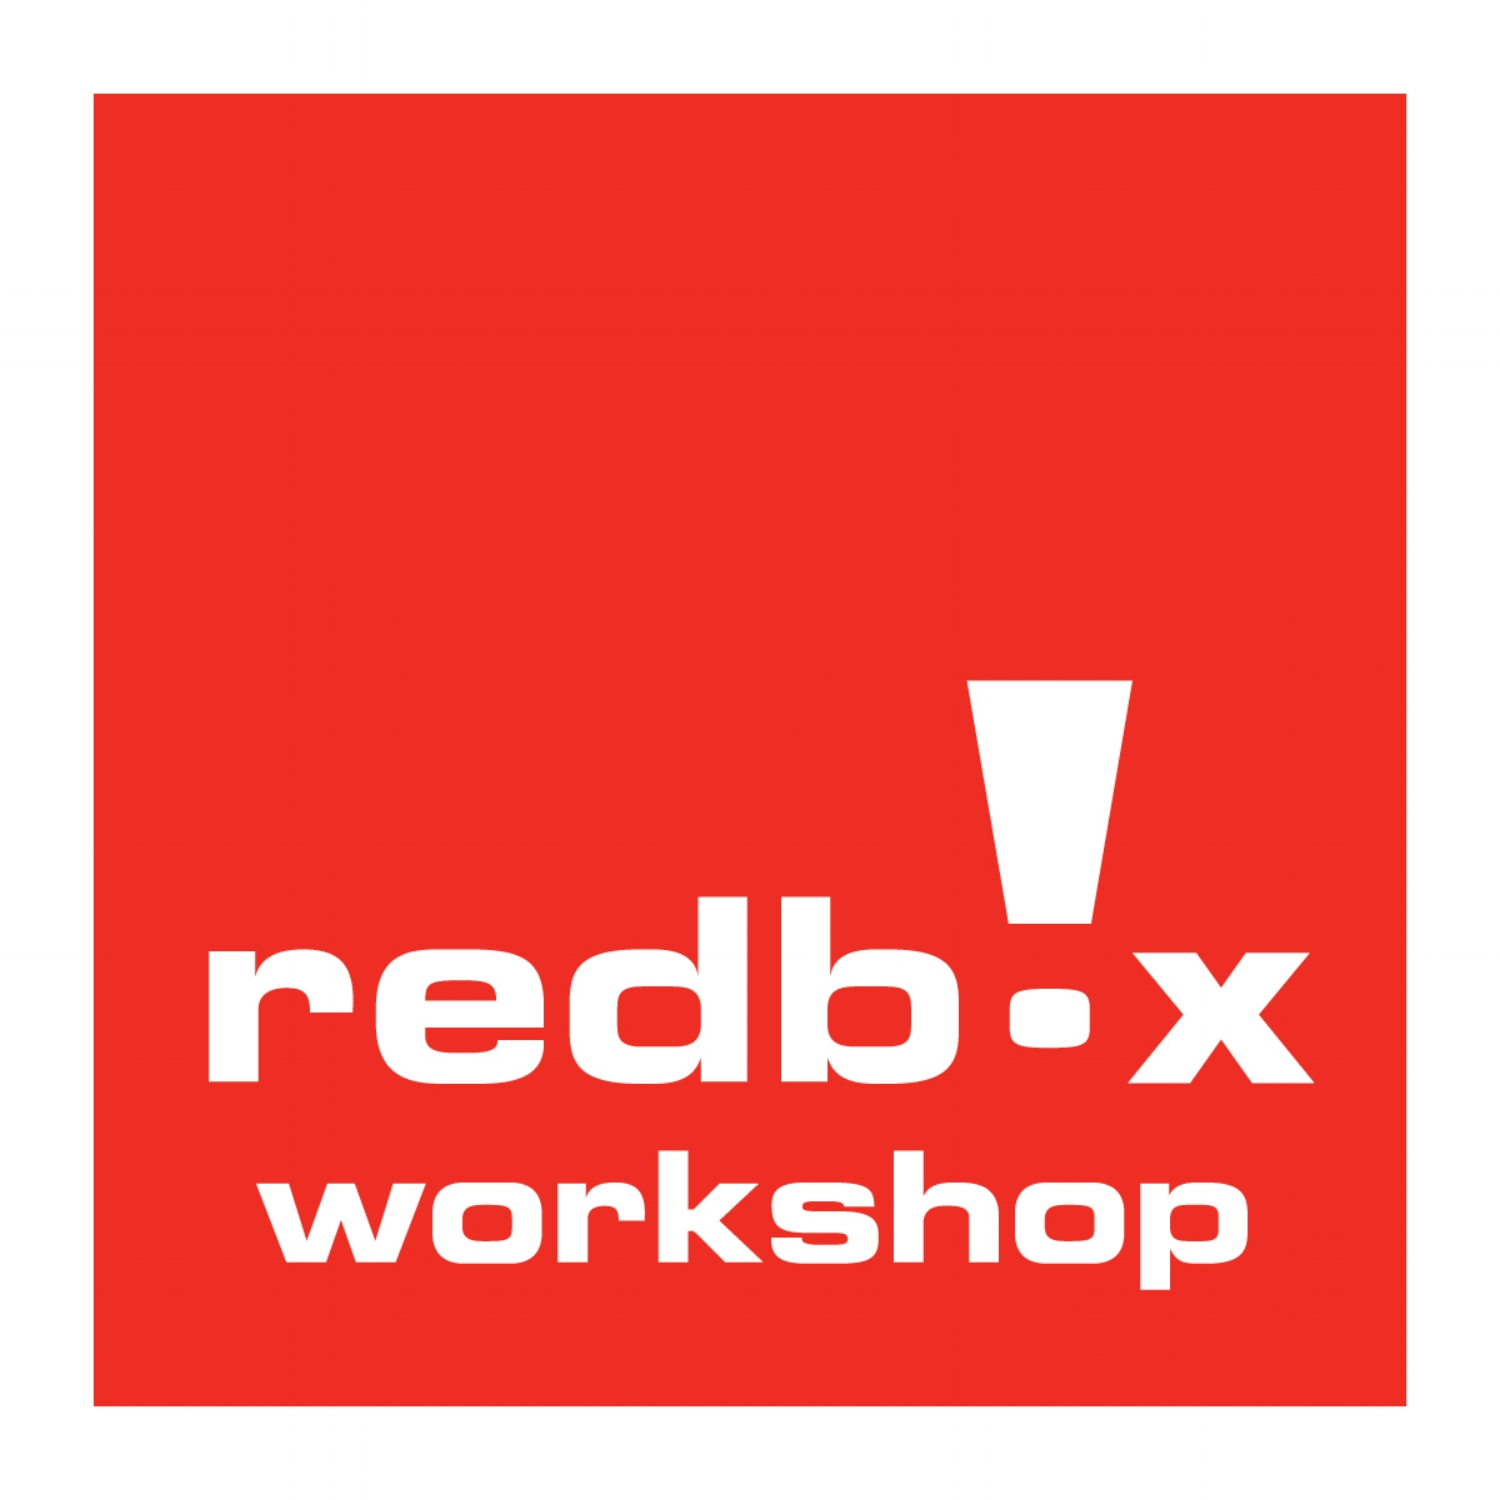 RedBox Workshop